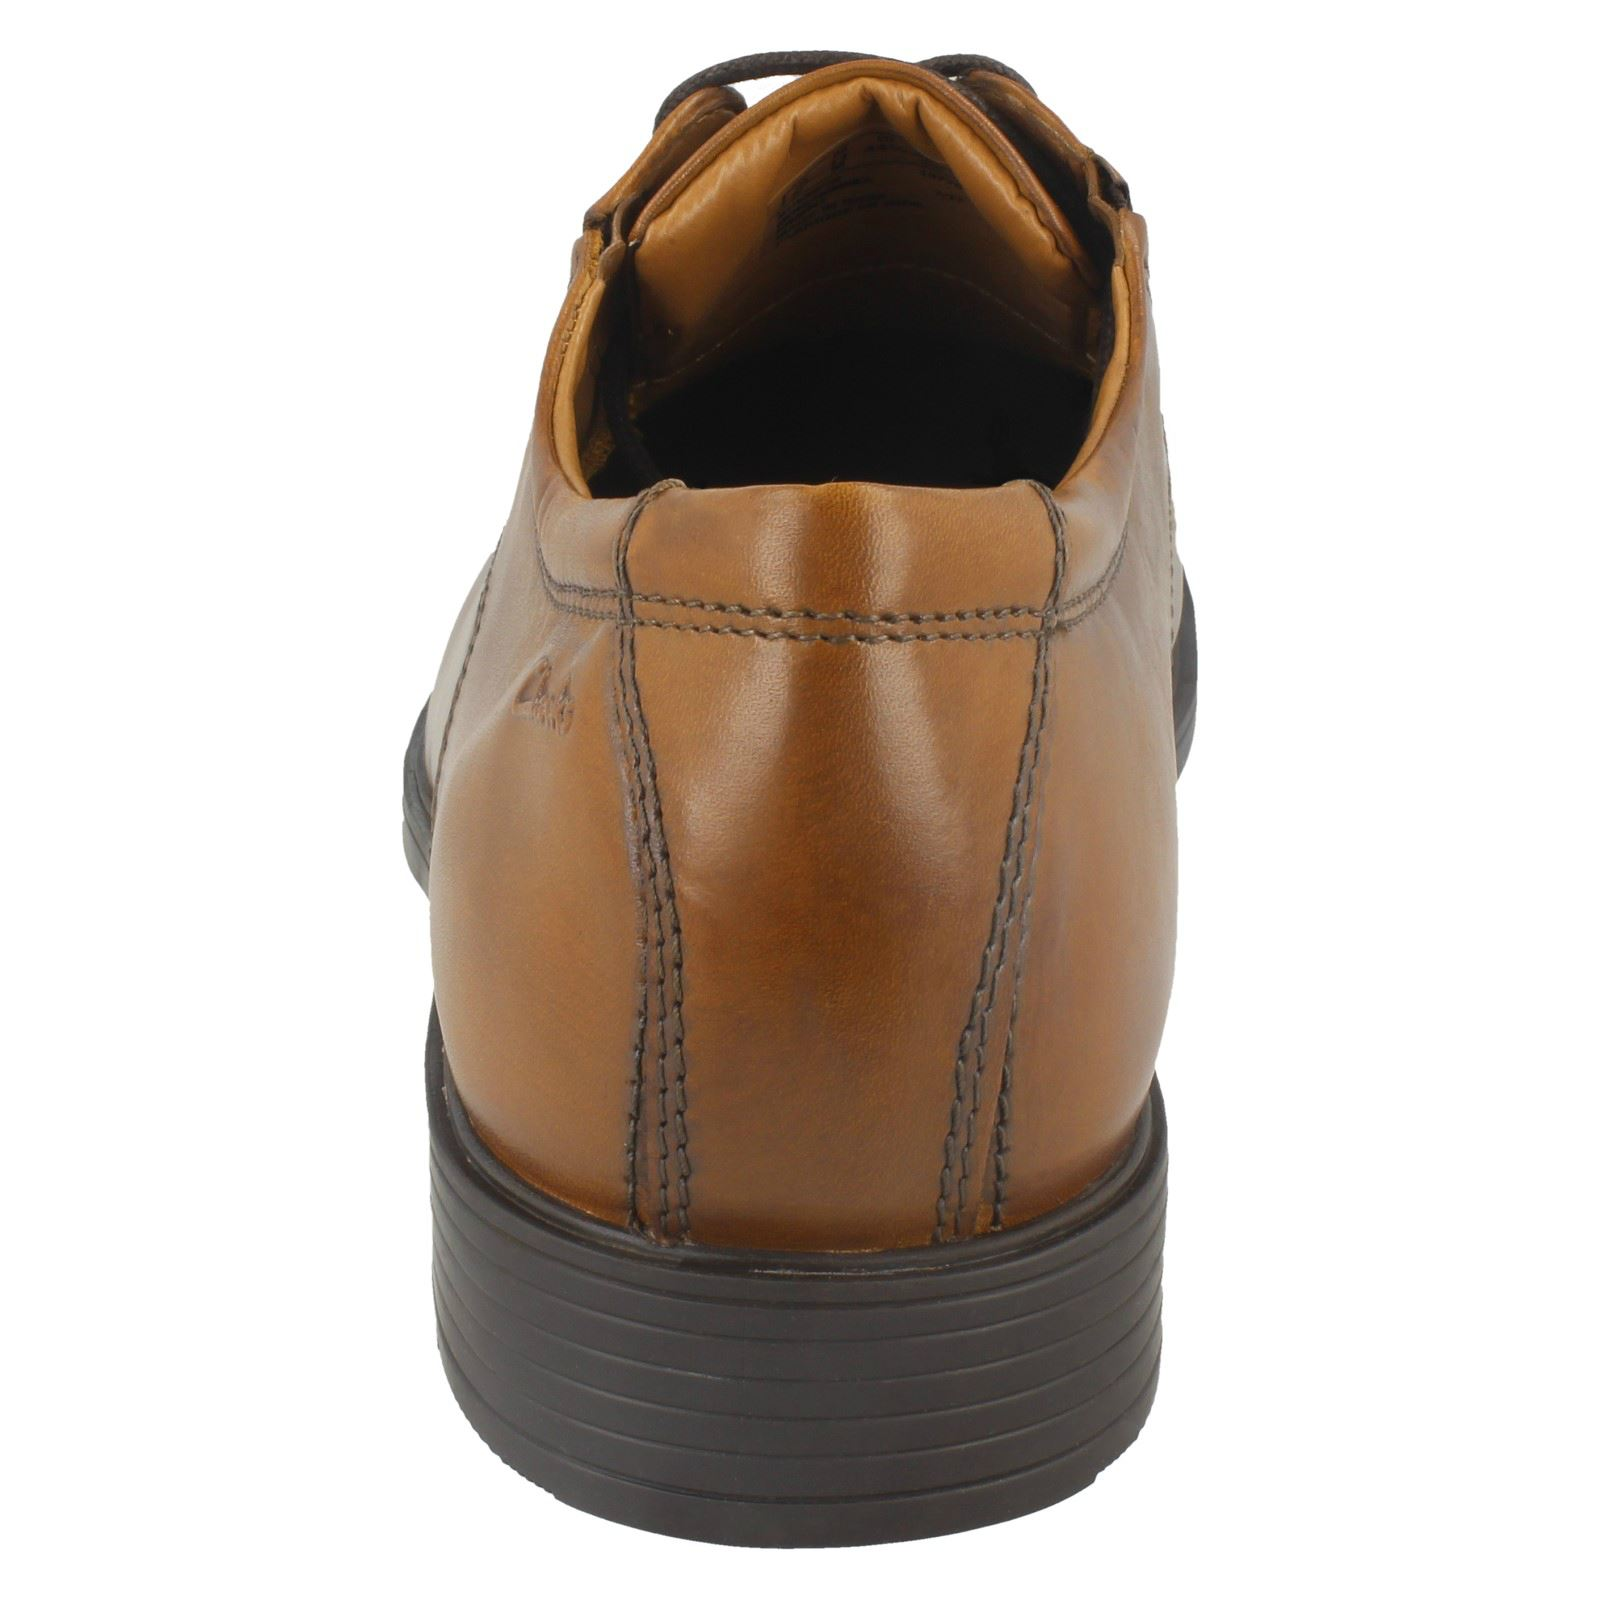 Mens-Clarks-Formal-Lace-Up-Shoes-Tilden-Cap thumbnail 27